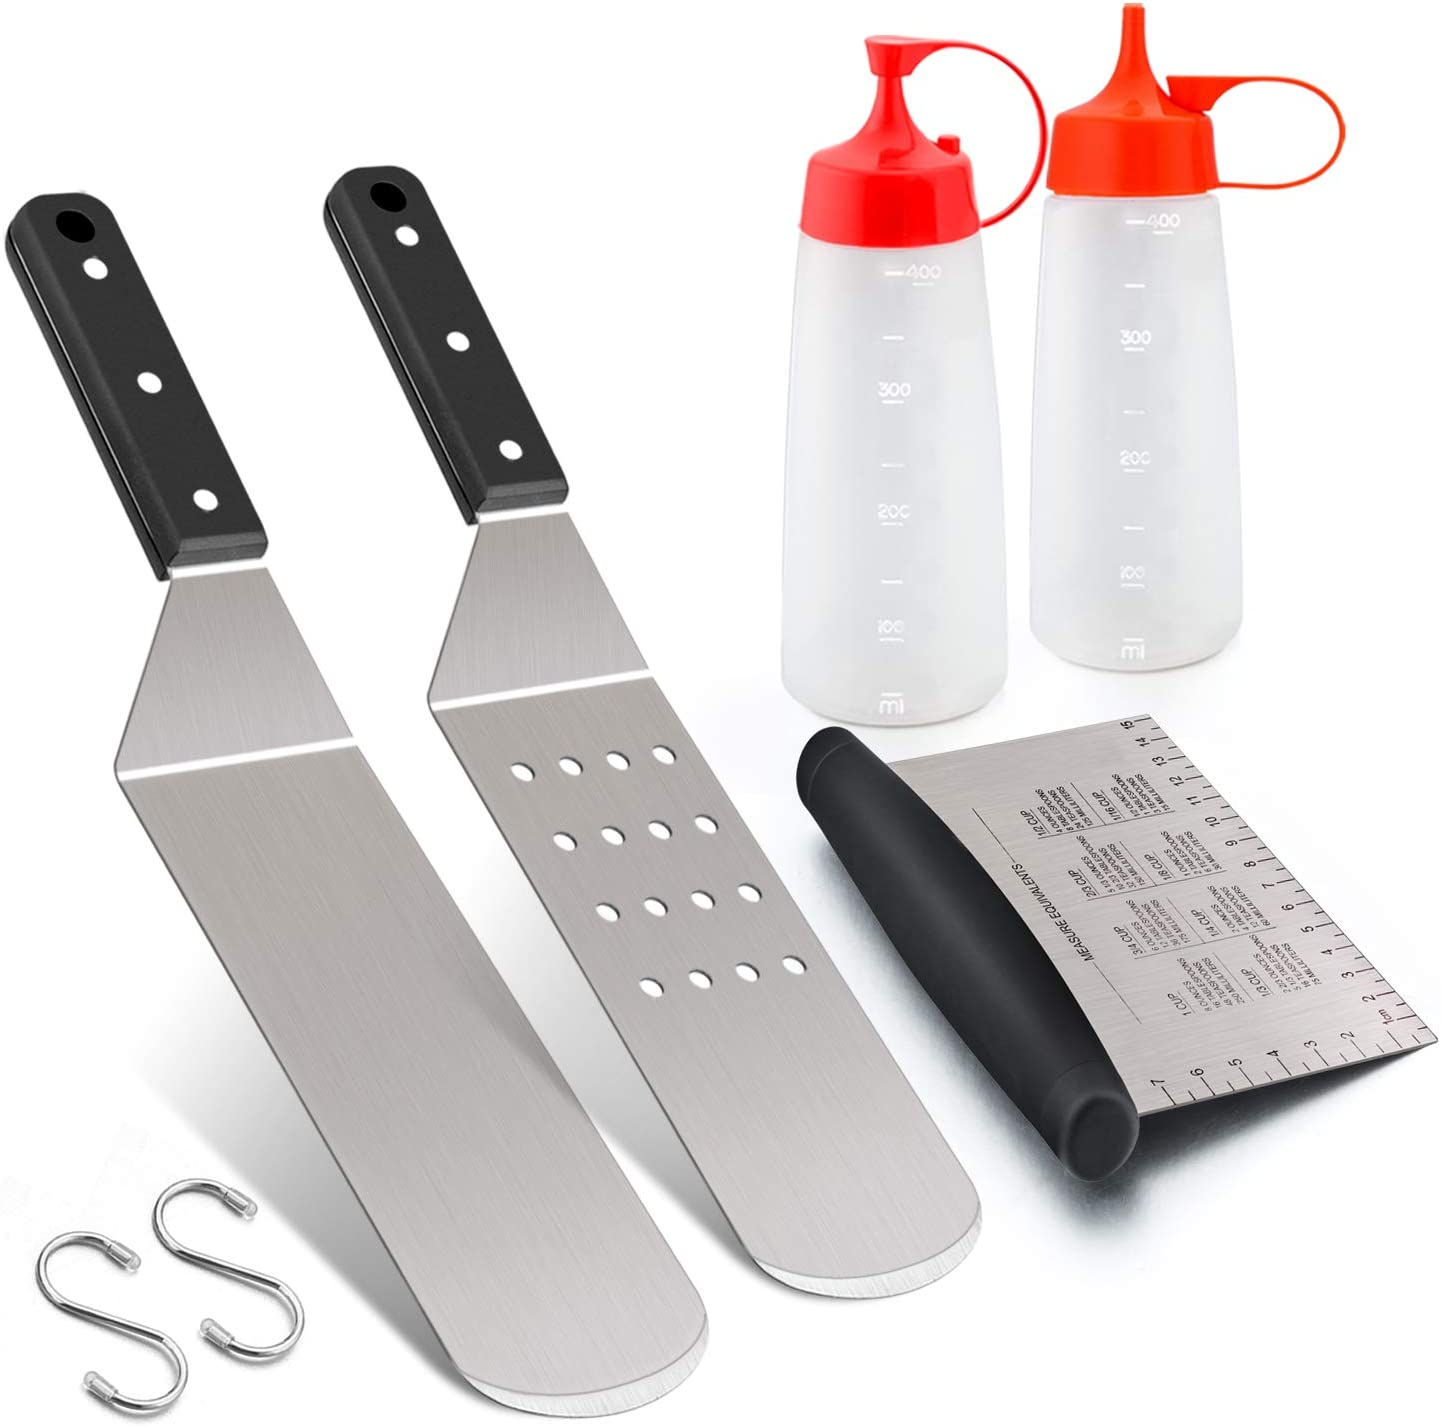 Heavy Duty Chef Gift Stainless Steel Grill Griddle Metal Spatula for Cast Iron Flat Top Teppanyaki Hibachi Cooking Carry Bag Leonyo Griddle Accessories Set of 10 Melting Dome Dishwasher Safe